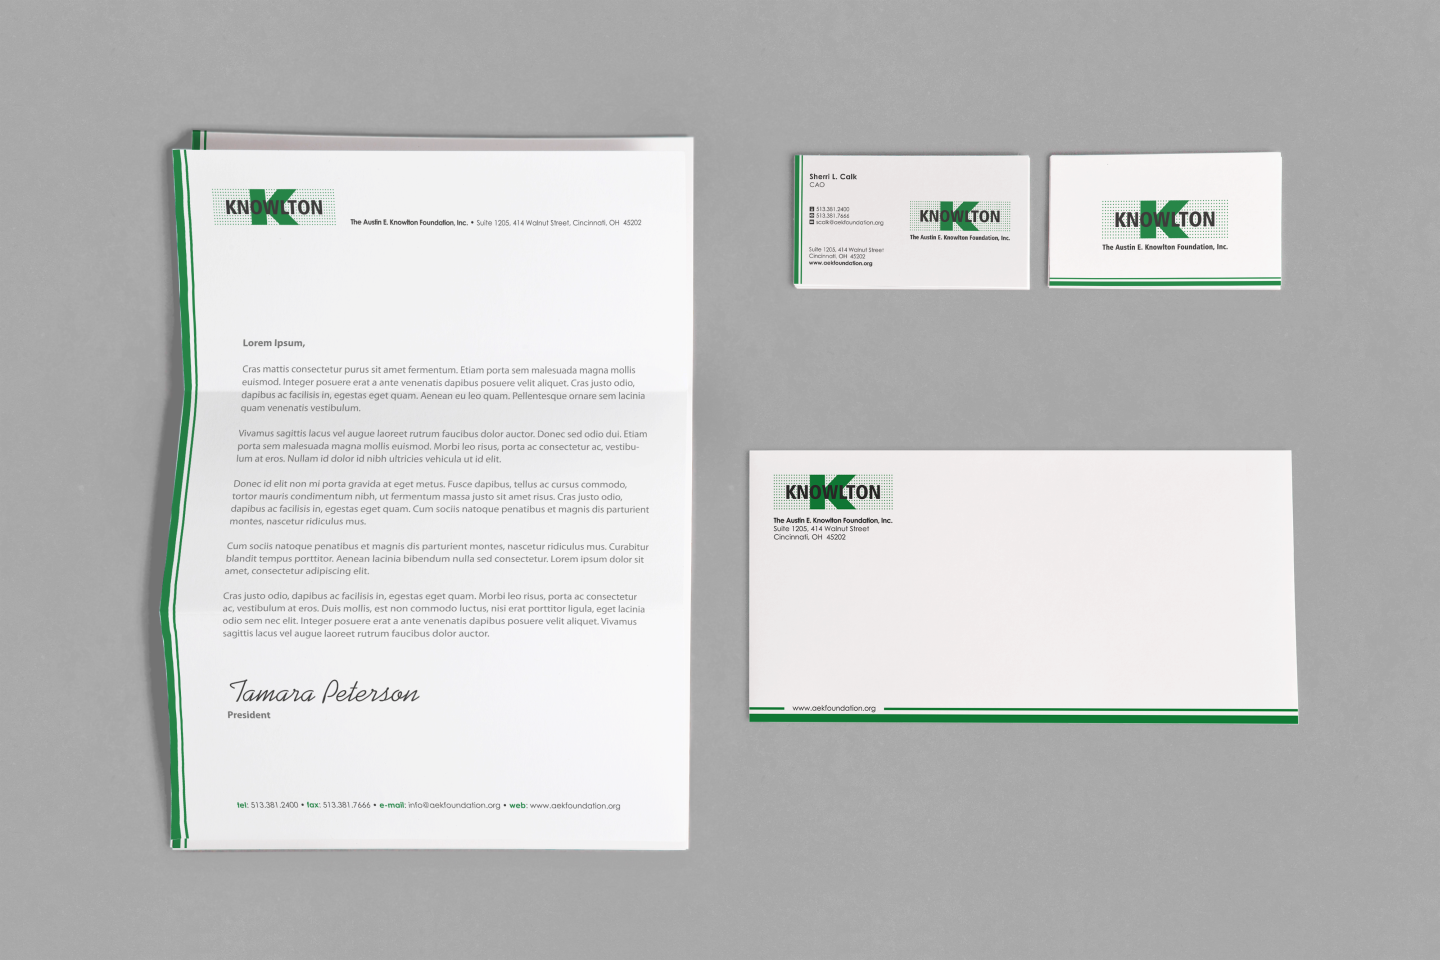 Create the next stationery for The Austin E. Knowlton Foundation, Inc.